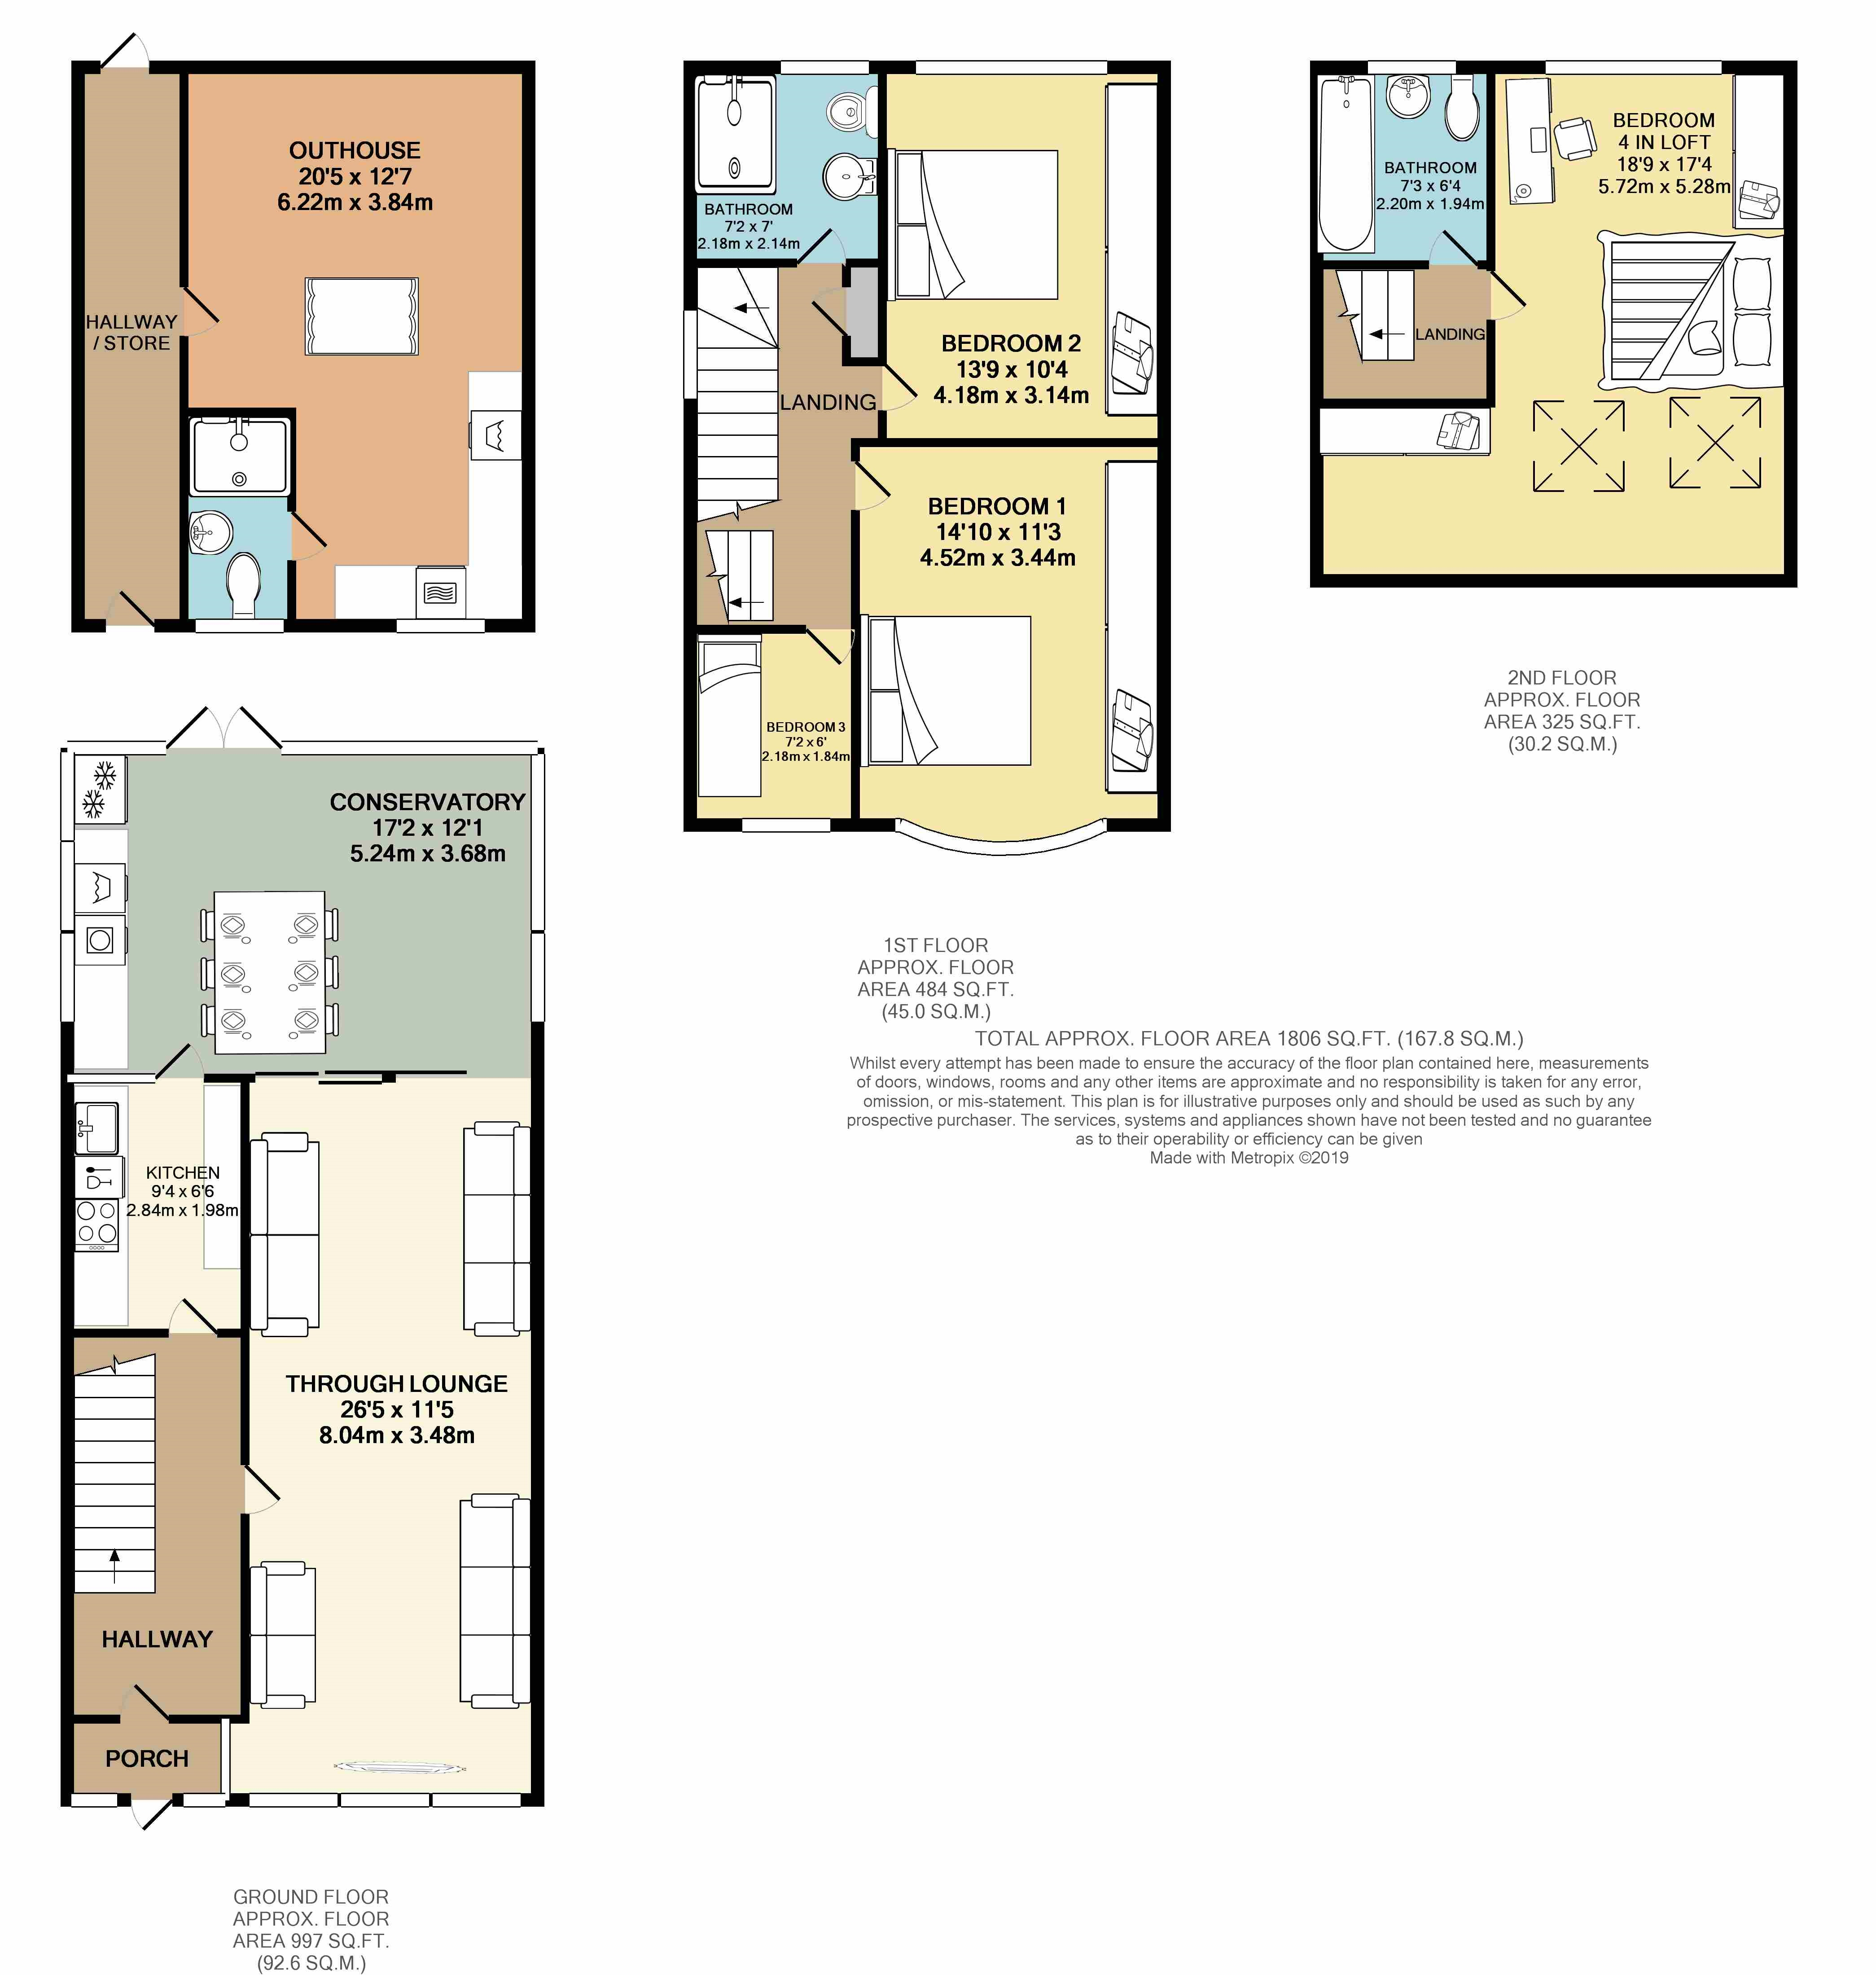 Floorplans For Belmont Avenue, Wembley, Middlesex,HA0 4HN